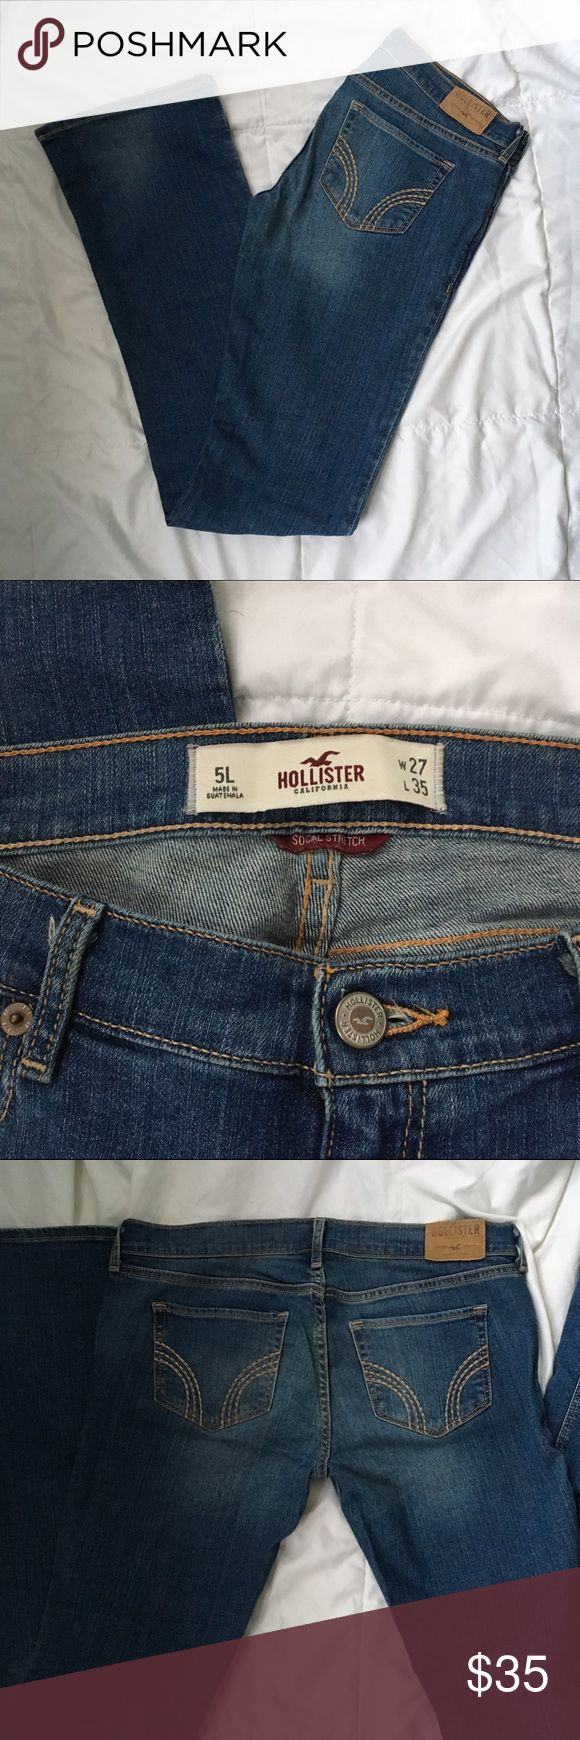 Hollister Boot cut jeans Recently purchased, but unfortunately too large for me. Beautiful condition!! Slight flare. Very Minor wear on one of the bottom cuffs- see photo. Size 27x35L. Bundle and save! Hollister Jeans Flare & Wide Leg